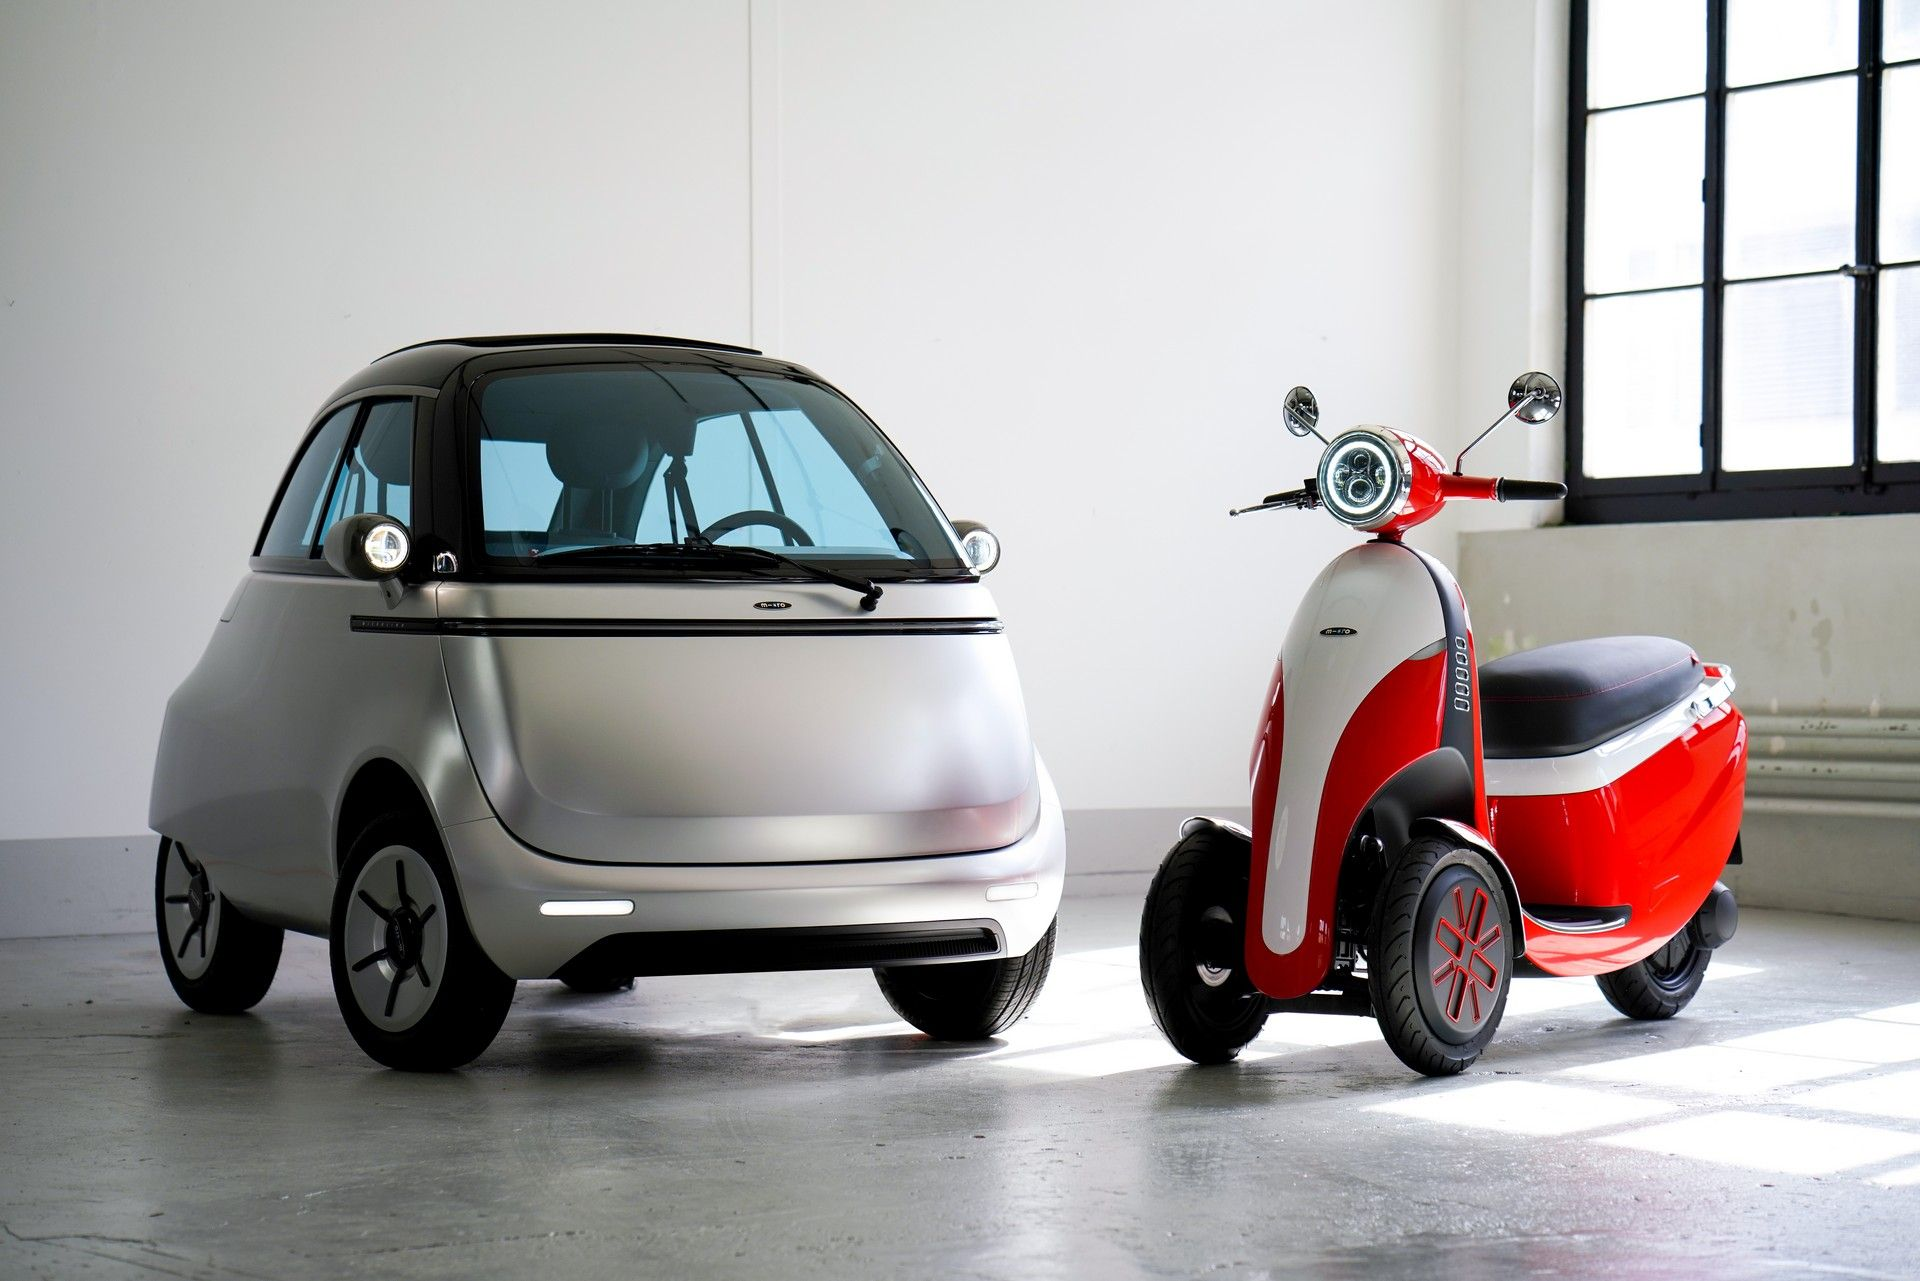 The Microlino 2.0 Is A Cute, Electric Bubble Car With Up